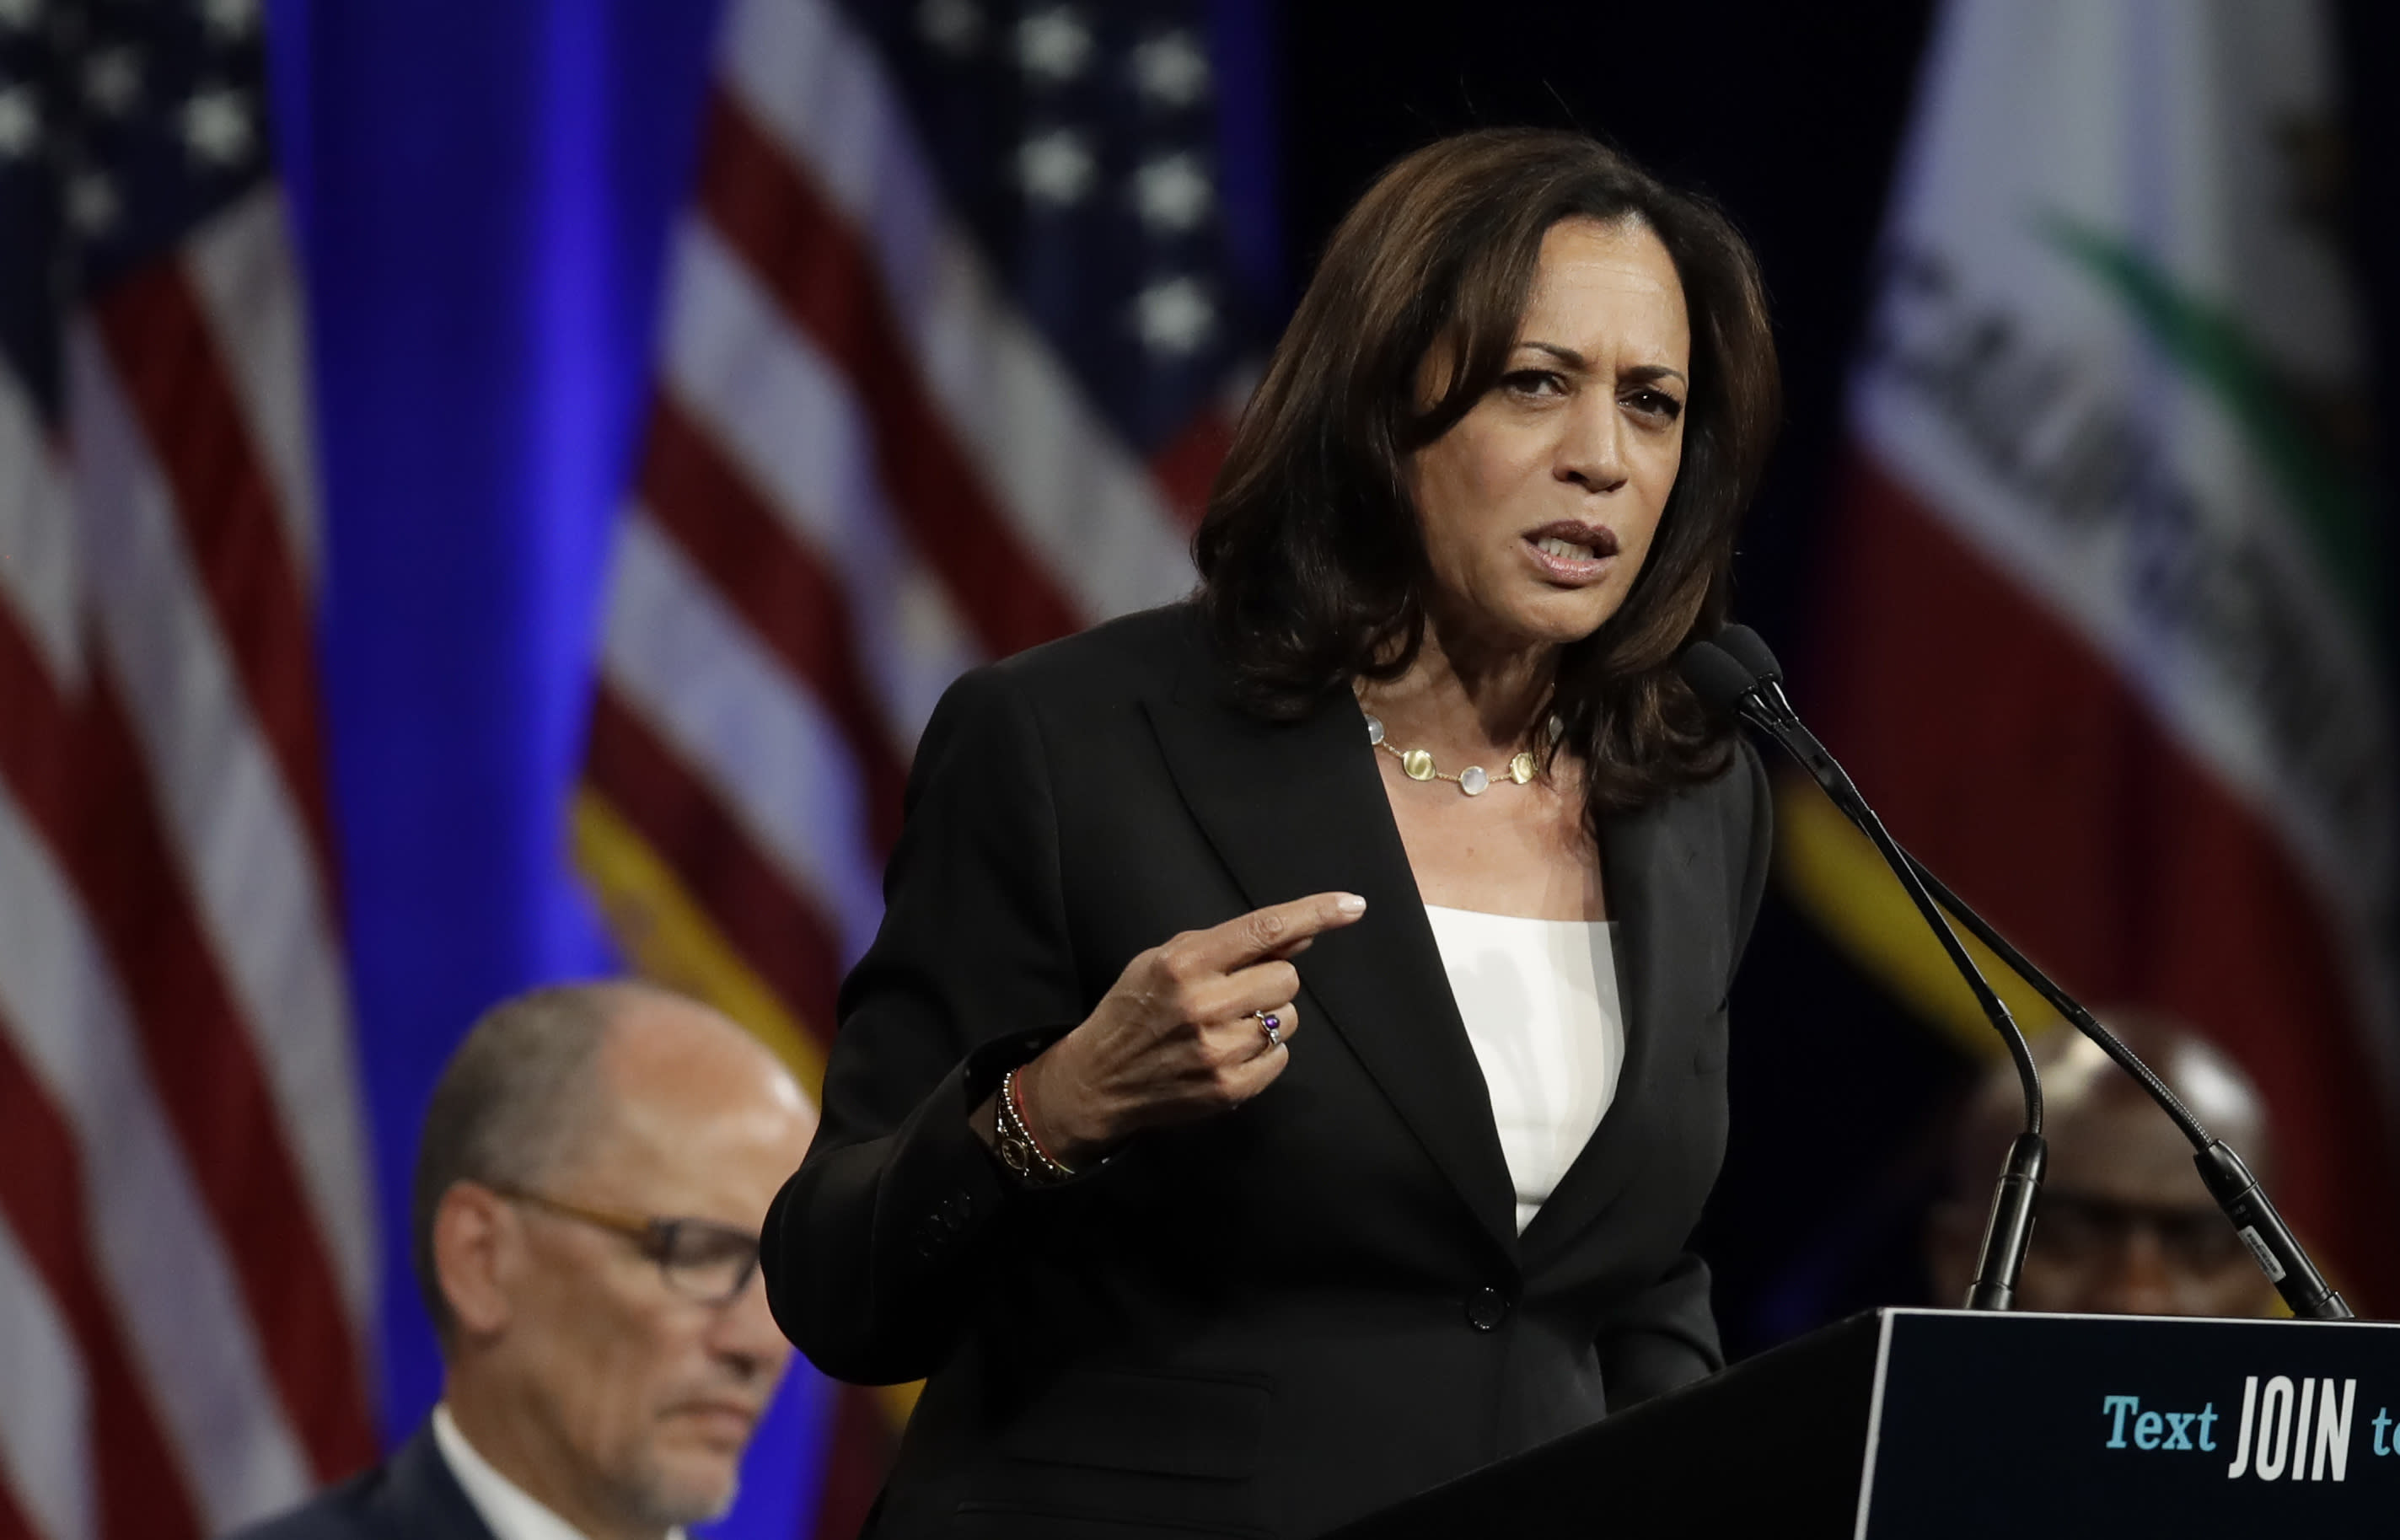 Democratic presidential candidate Sen. Kamala Harris, D-Calif., gestures while speaking at the Democratic National Committee's summer meeting Friday, Aug. 23, 2019, in San Francisco. More than a dozen Democratic presidential hopefuls are making their way to California to curry favor with national party activists from around country. Democratic National Committee members will hear Friday from top contenders, including Elizabeth Warren, Harris and Bernie Sanders. (AP Photo/Ben Margot)